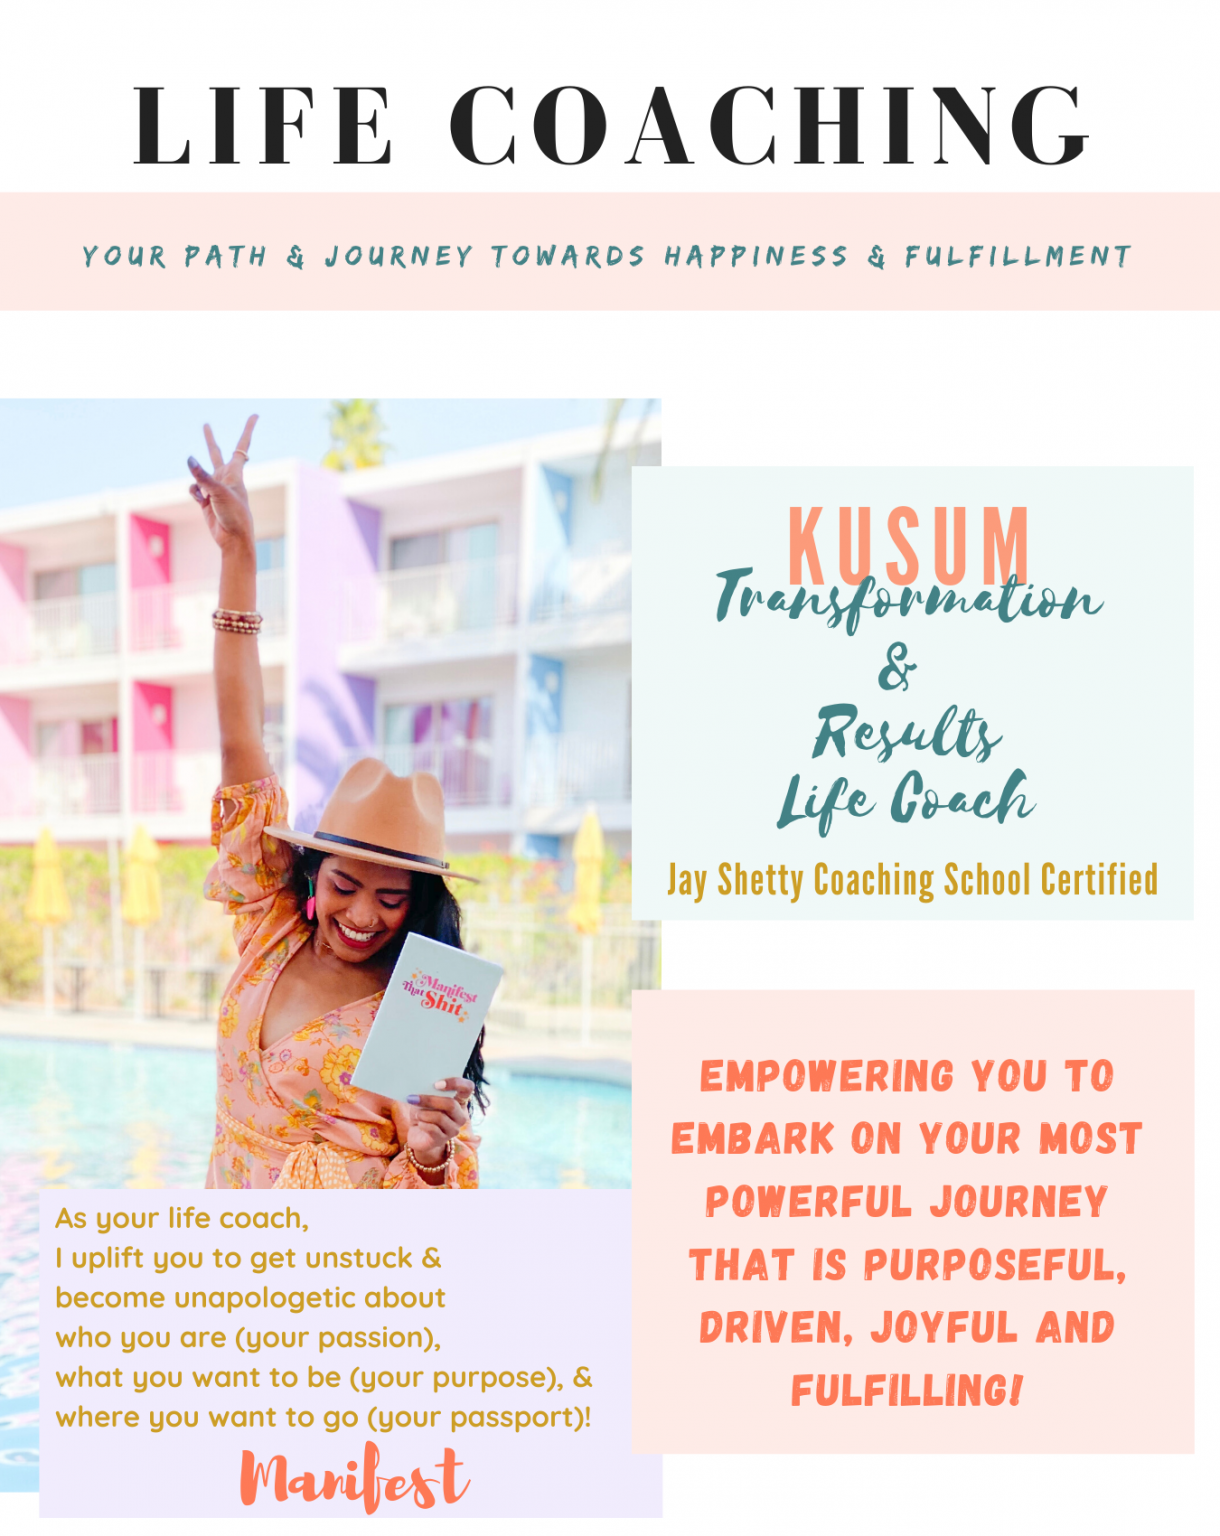 Passion Purpose Passport Life Coaching & Lifestyle Blog Jay Shetty Coaching School Certified